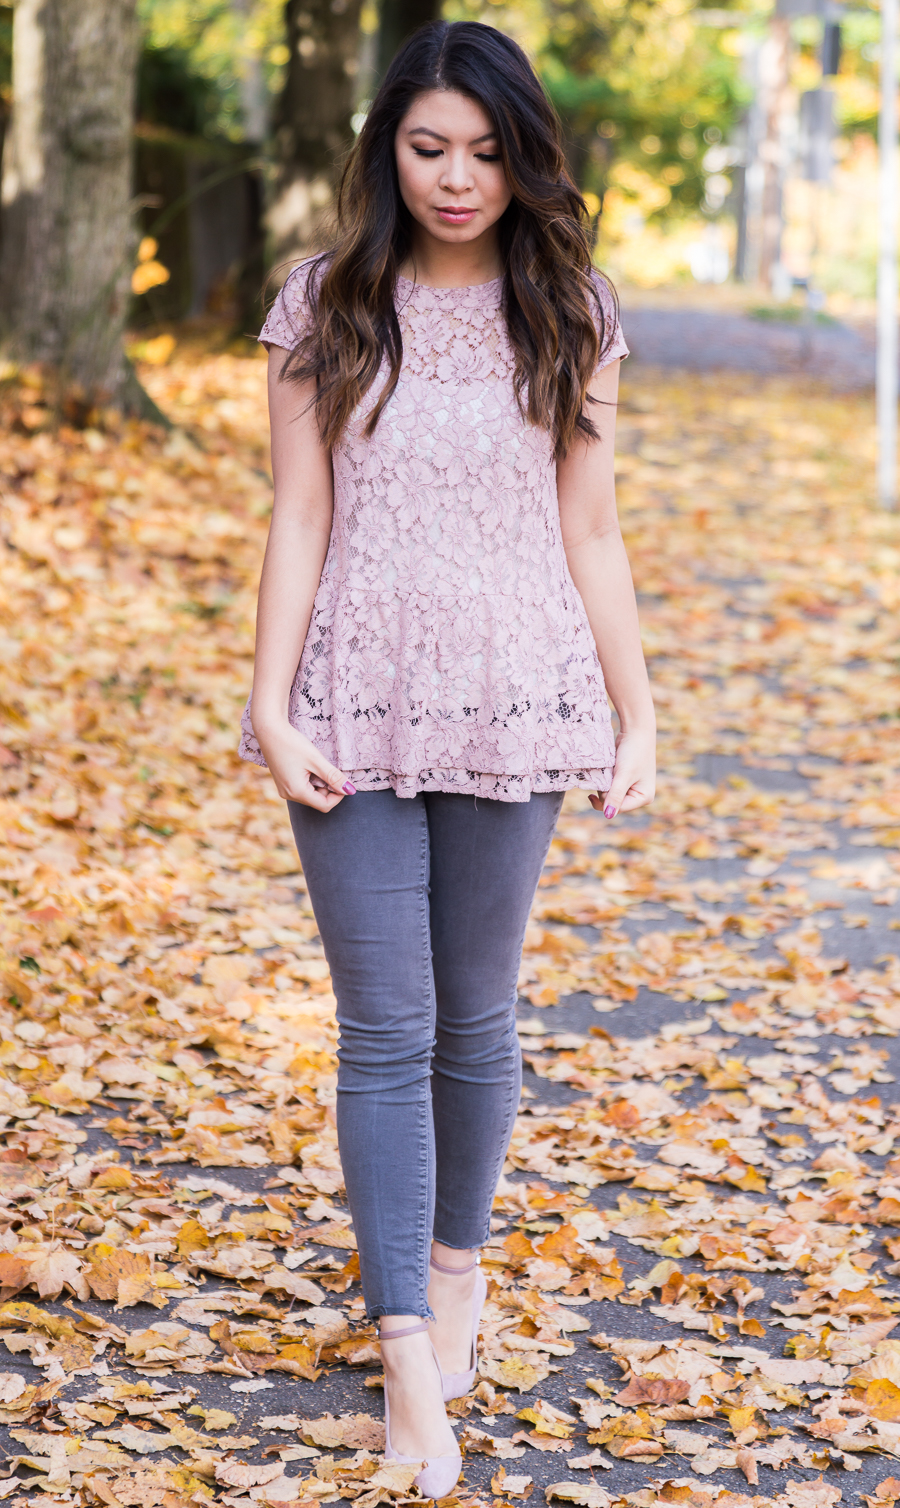 Blush lace top, peplum top, grey jeans outfit, Sam Edelman pumps, fall outfit, Seattle fashion blogger www.justatinabit.com